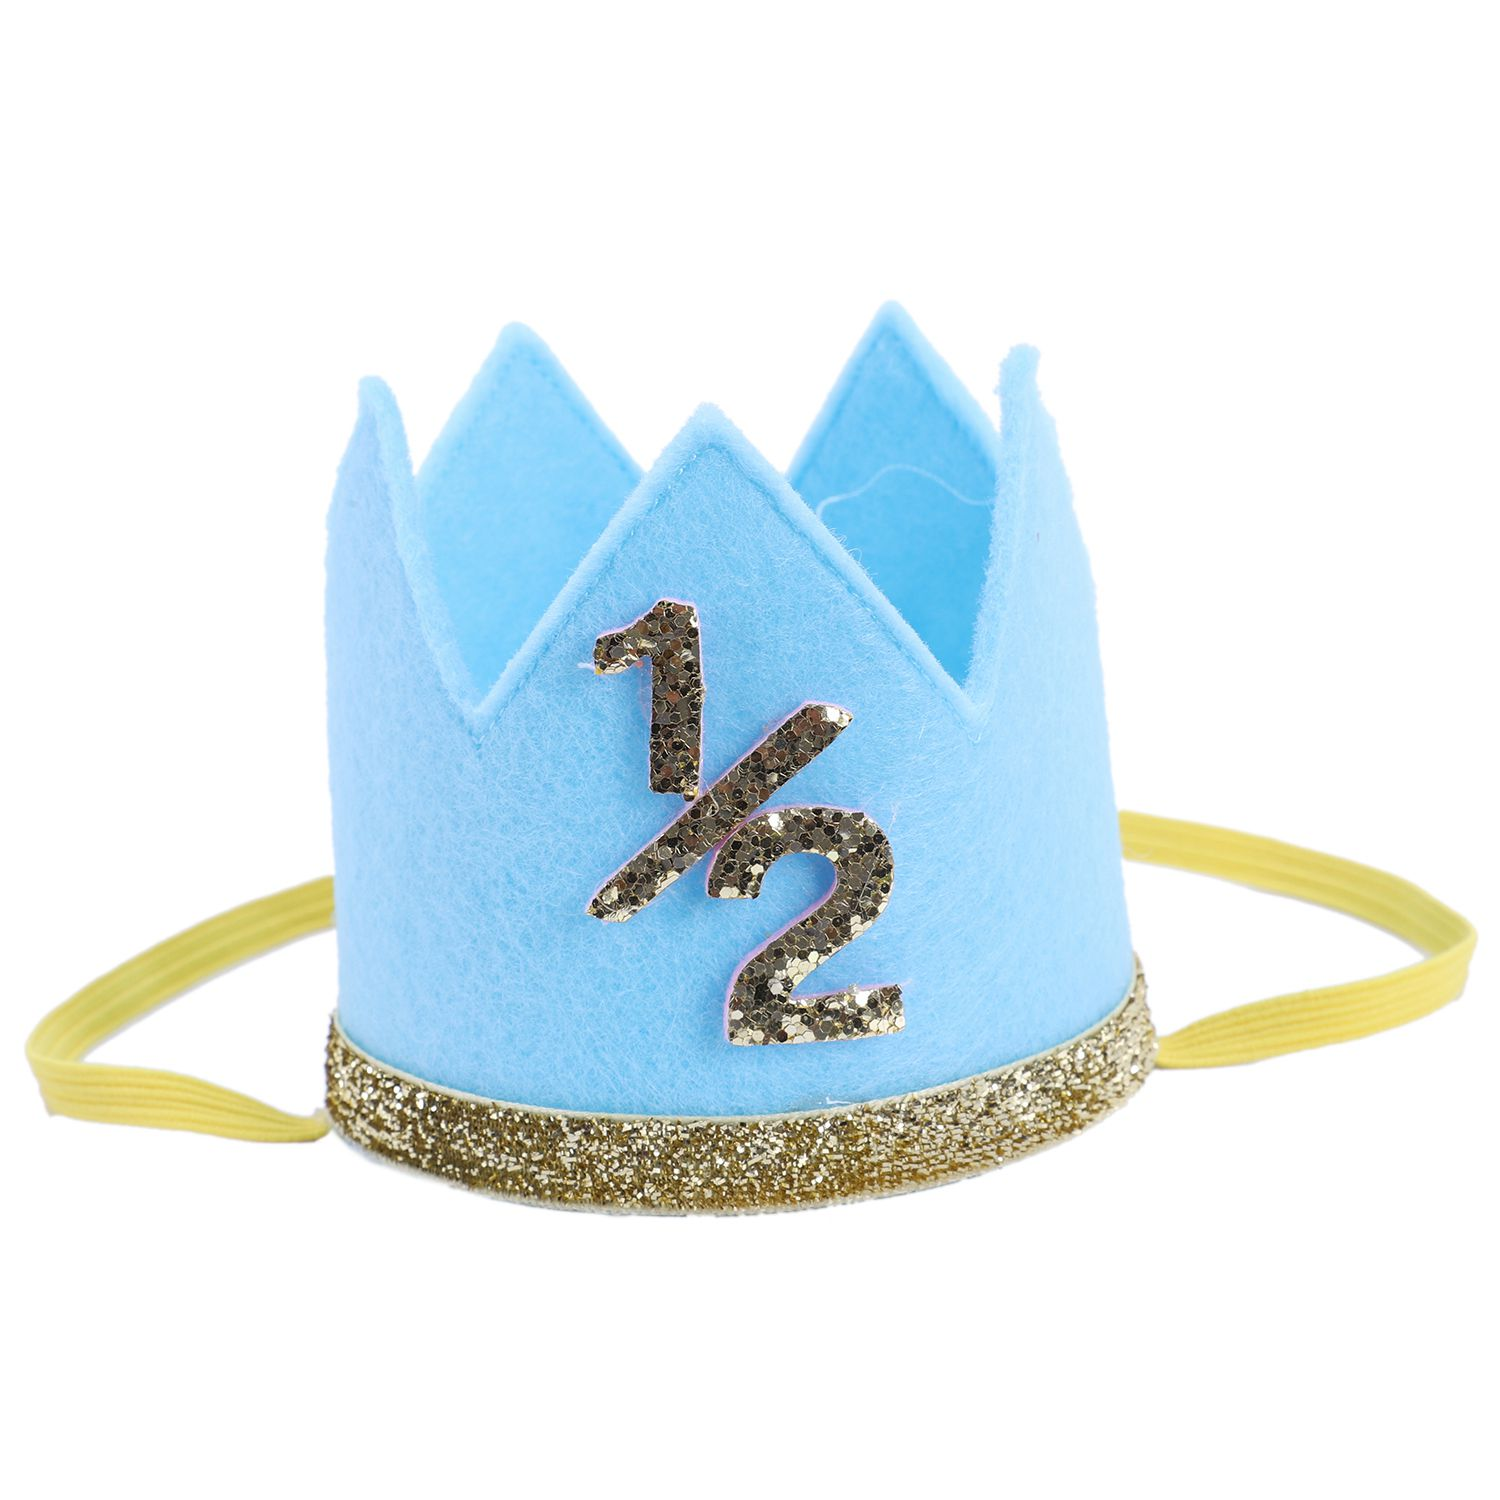 HOT SALE Newborn Infant Toddler Baby Girl Boy Half 1 2 First Second Third Birthday Crown Party Cake Smash Headband Hair Access